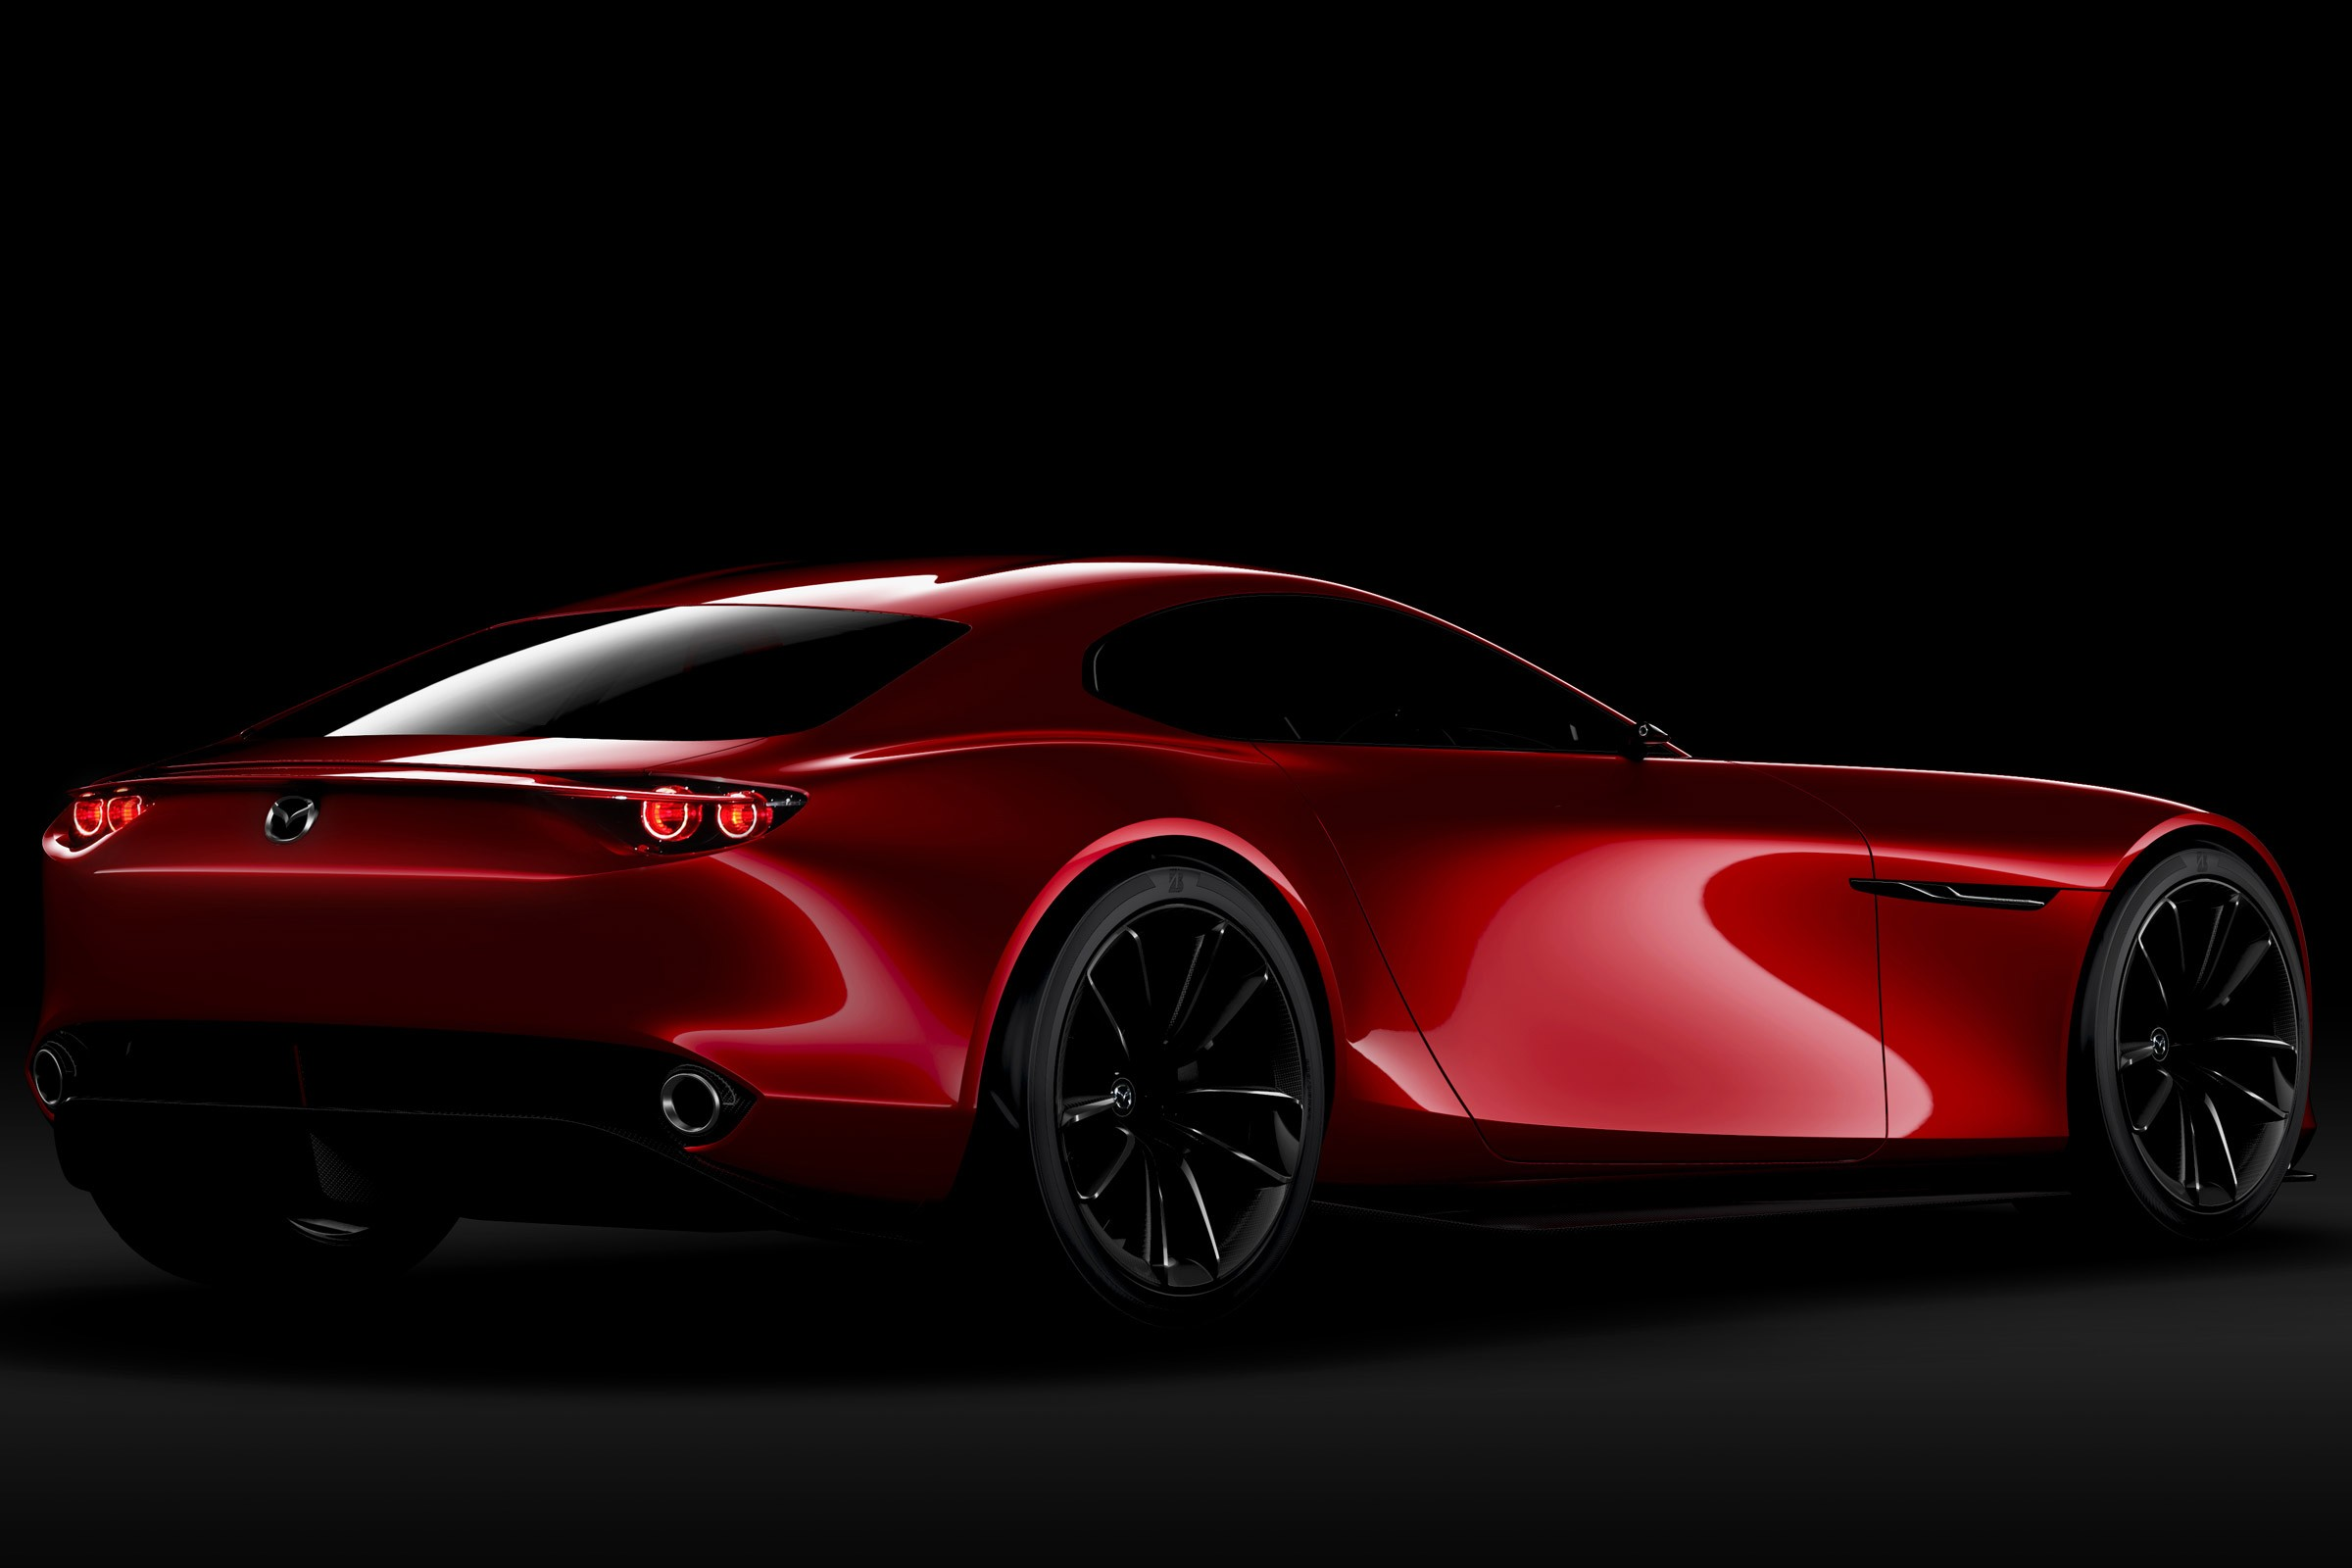 Super Car 5760x1080 Wallpaper Vehicle Car Concept Cars Roadster Mazda Japanese